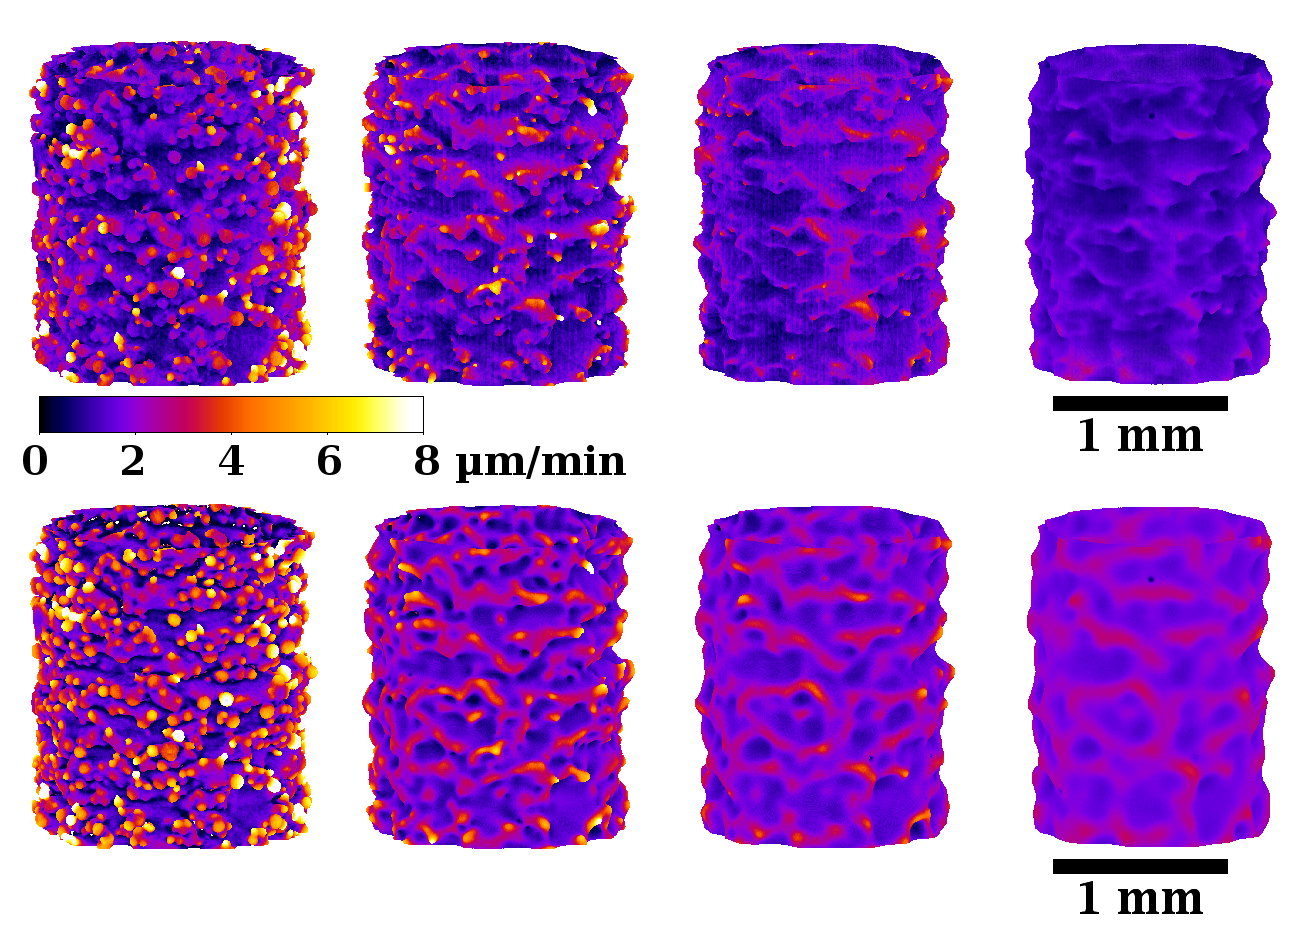 Local etching velocity on EBM TA6V struts : comparision of experiments and model.